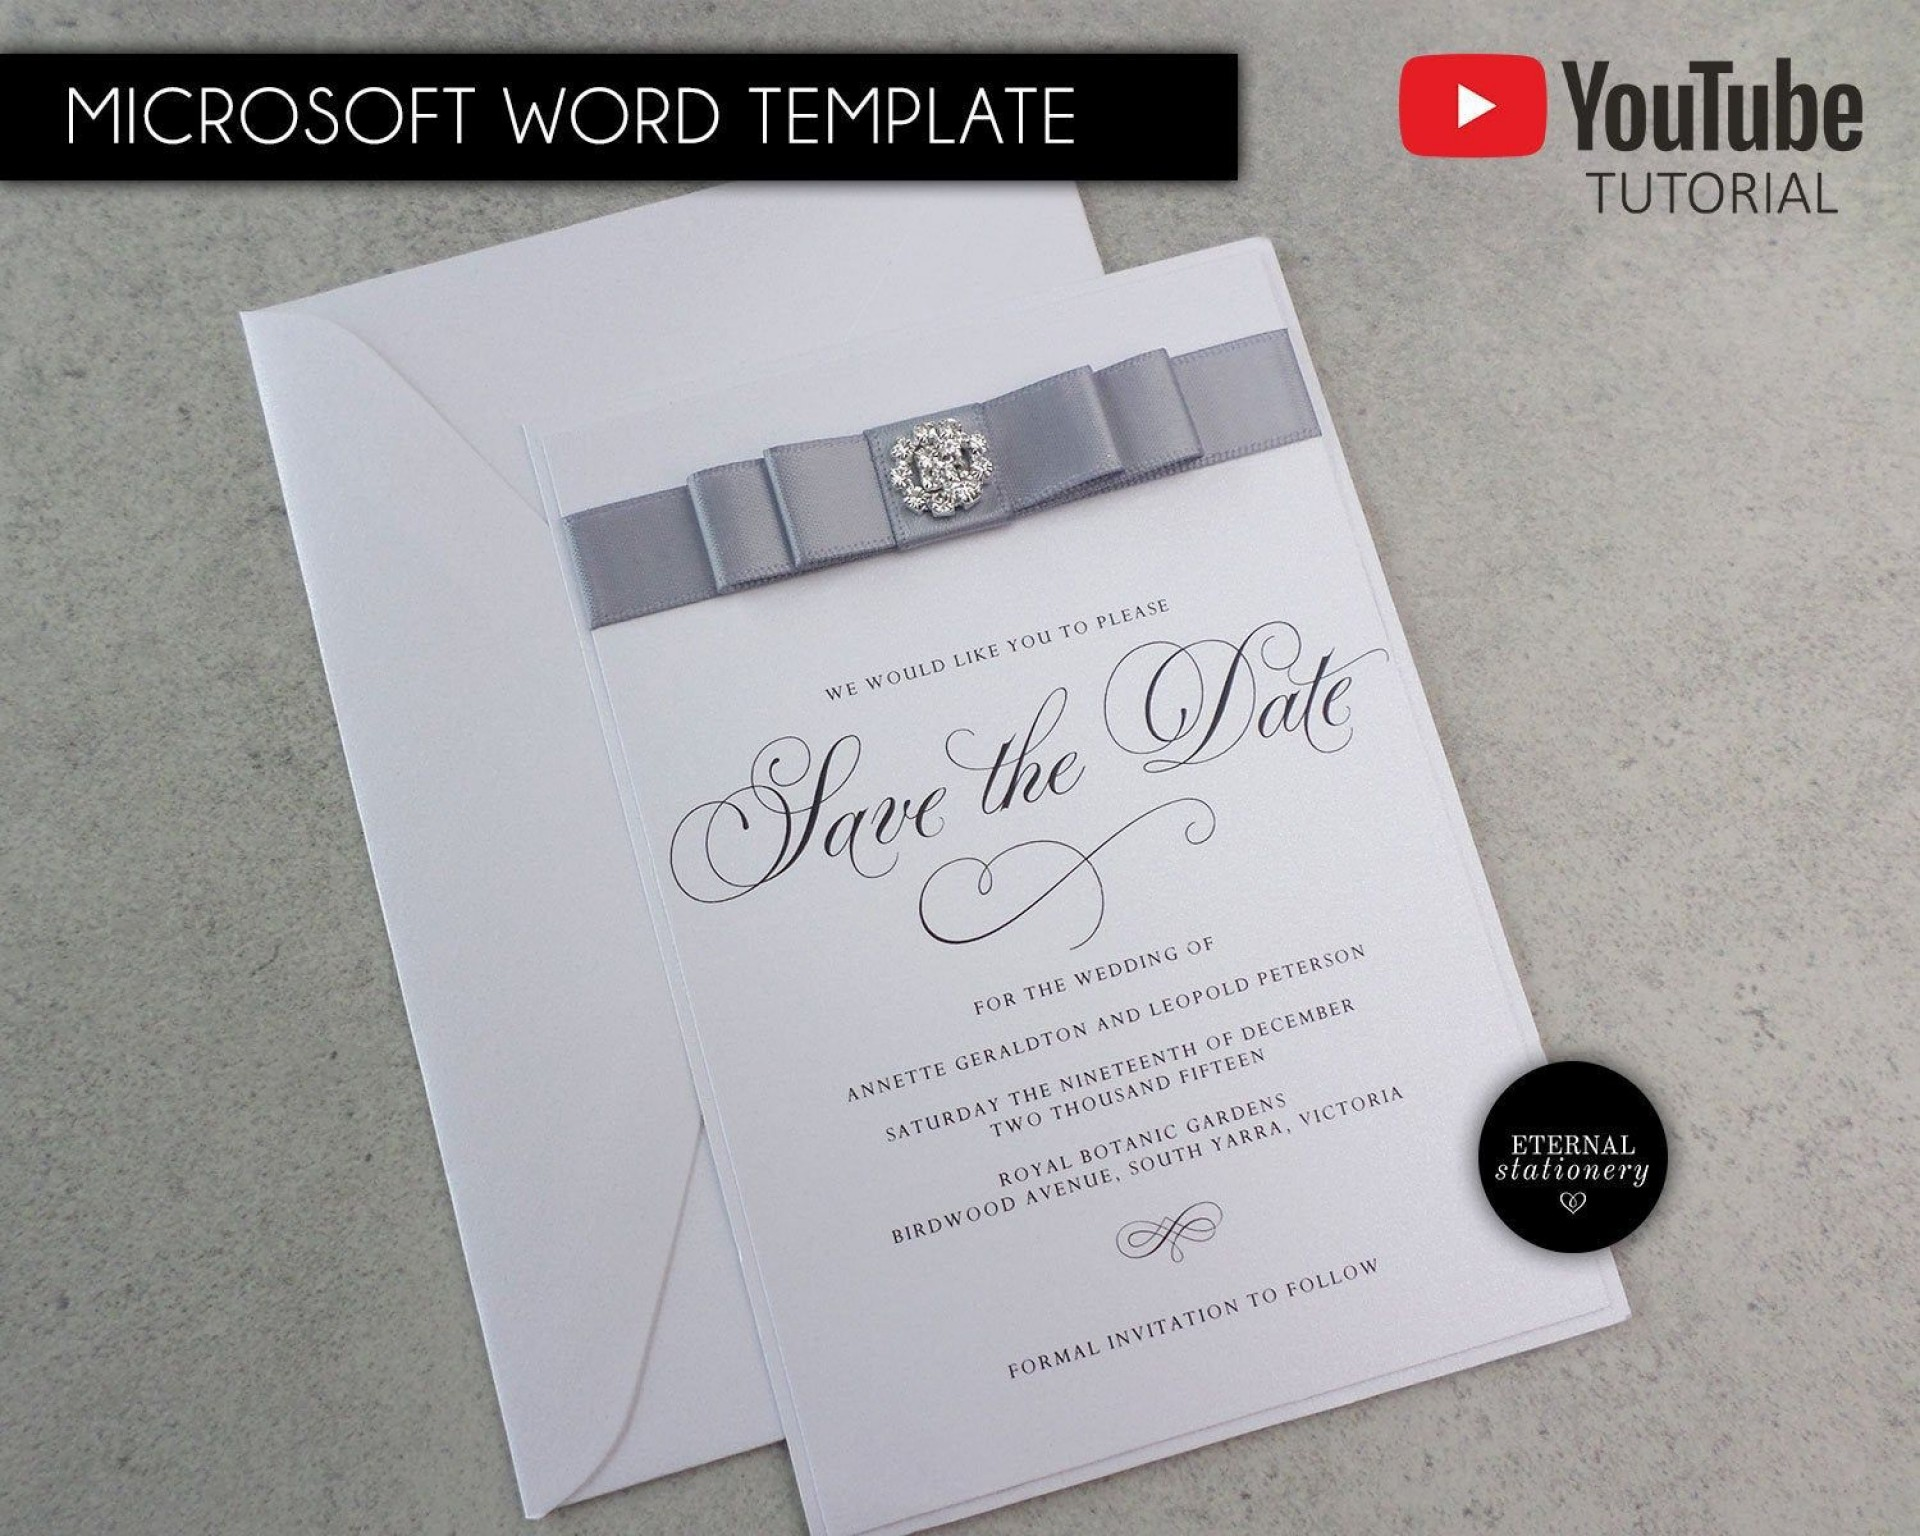 002 Unique Save The Date Word Template Idea  Free Birthday For Microsoft Postcard Flyer1920